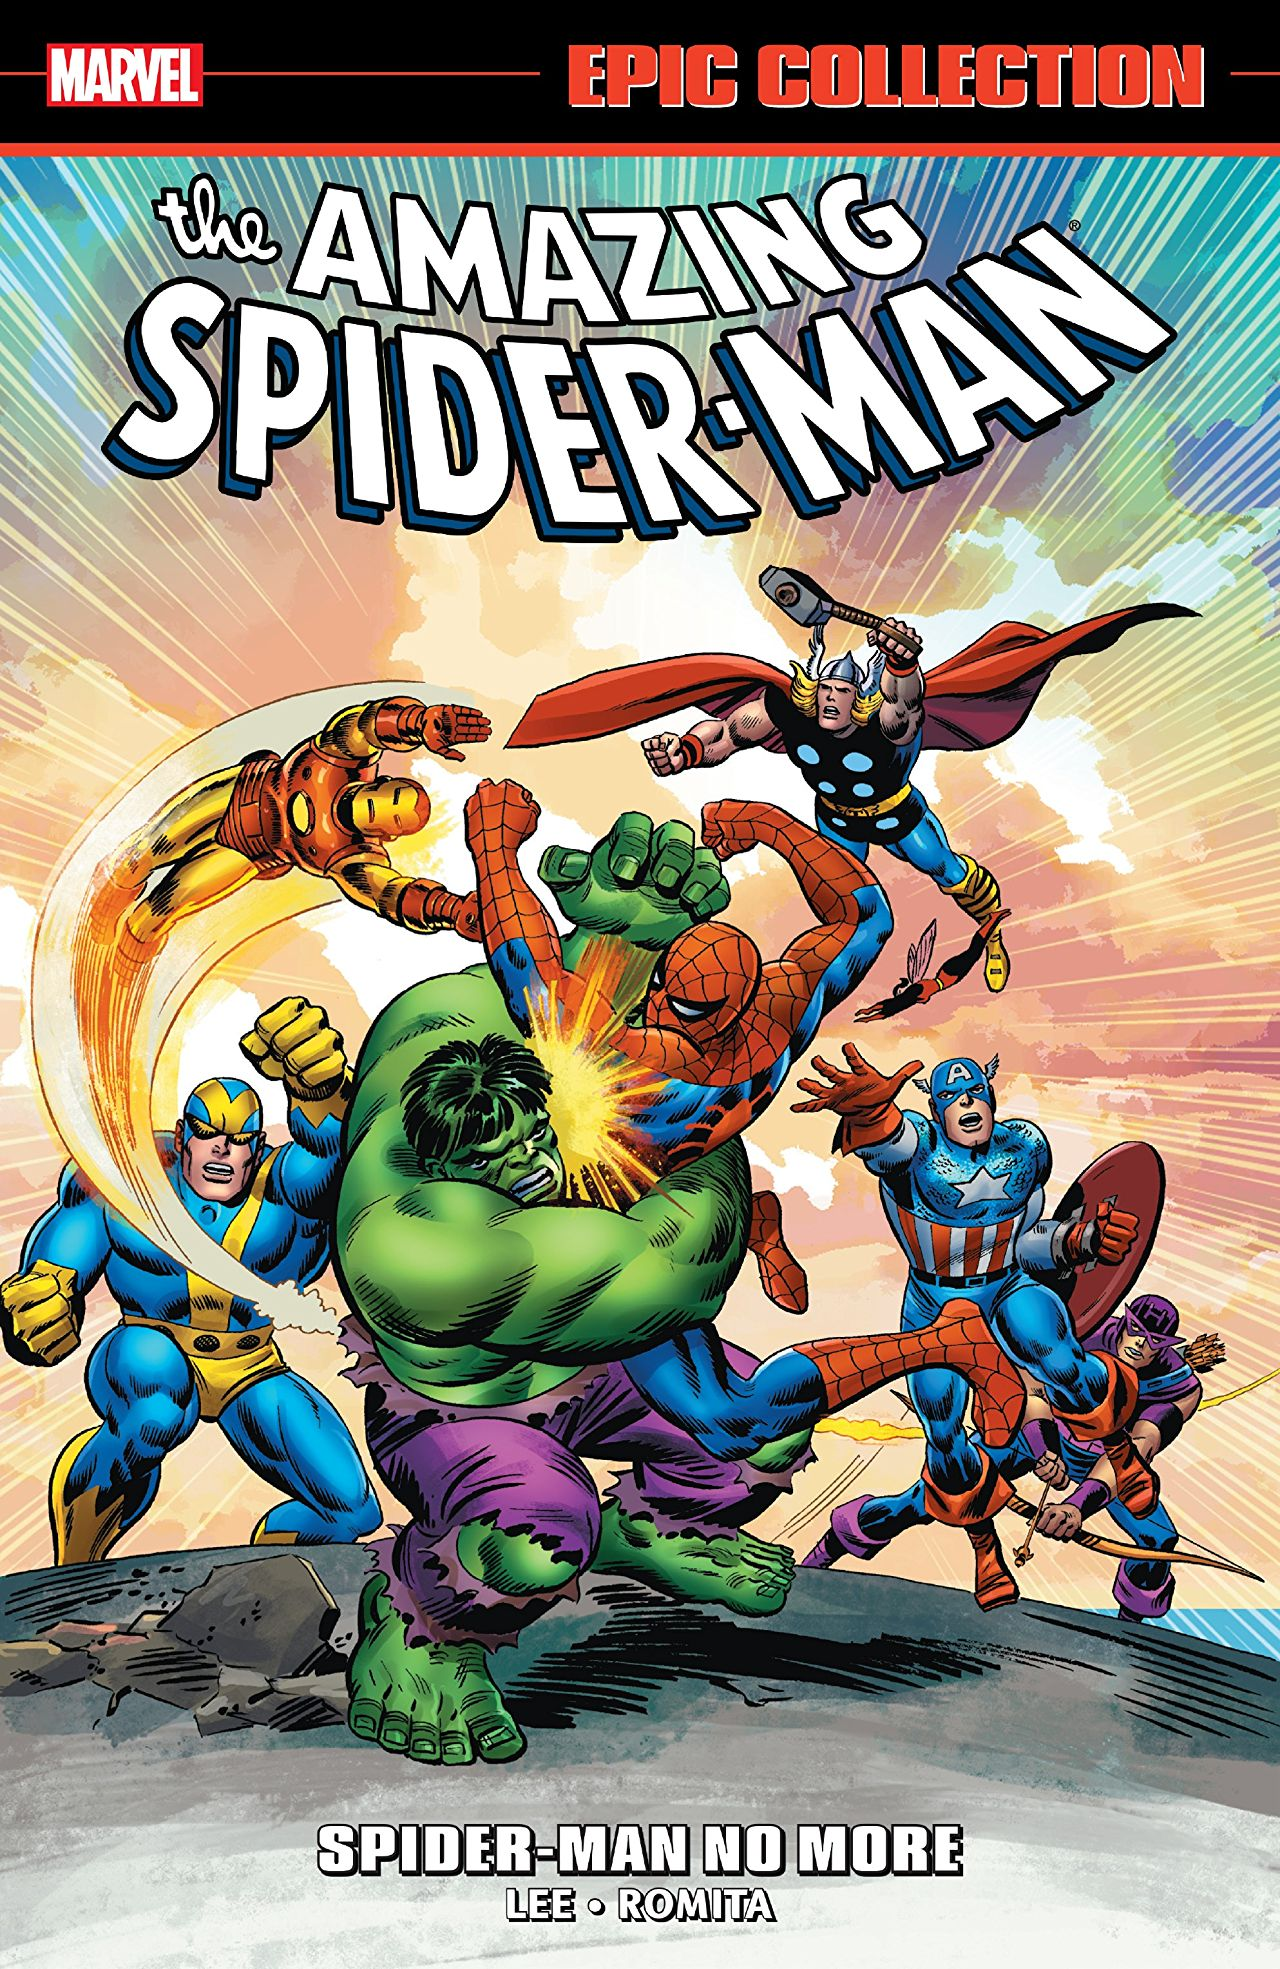 The Amazing Spider-Man Epic Collection: Spider-Man No More review: hits a real sweet spot in the character's mythos